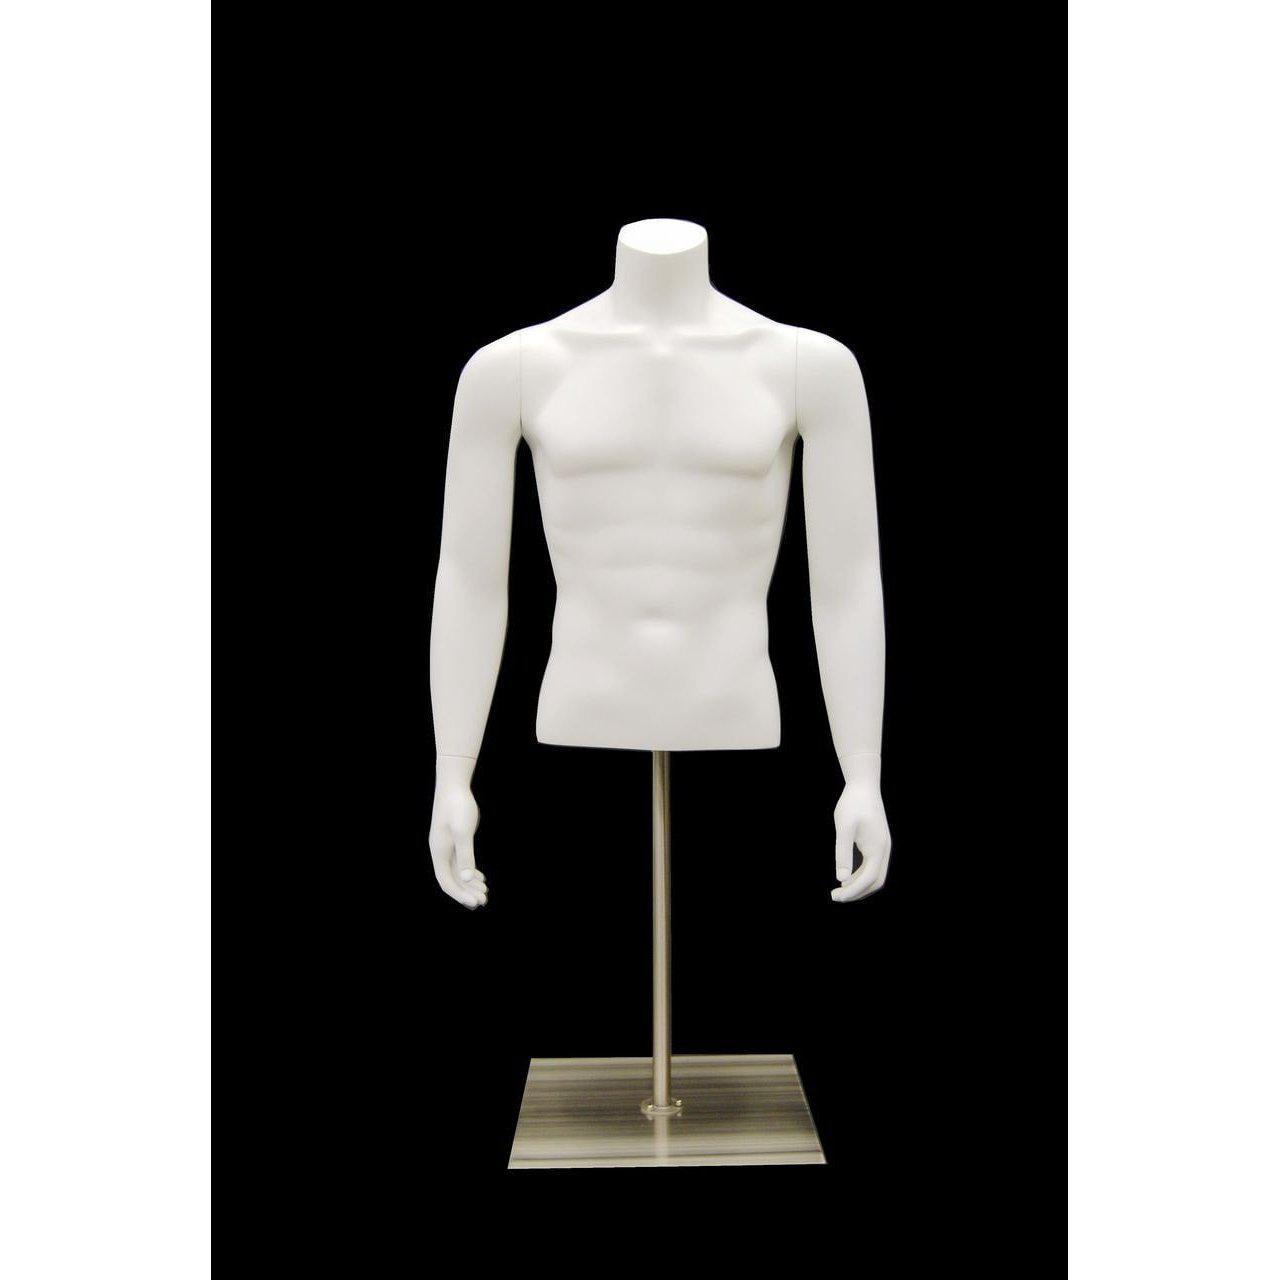 Mannequin Mall Male Torso w/ Base MM-EGTMSABW For Fashion Stores and Retail Shops